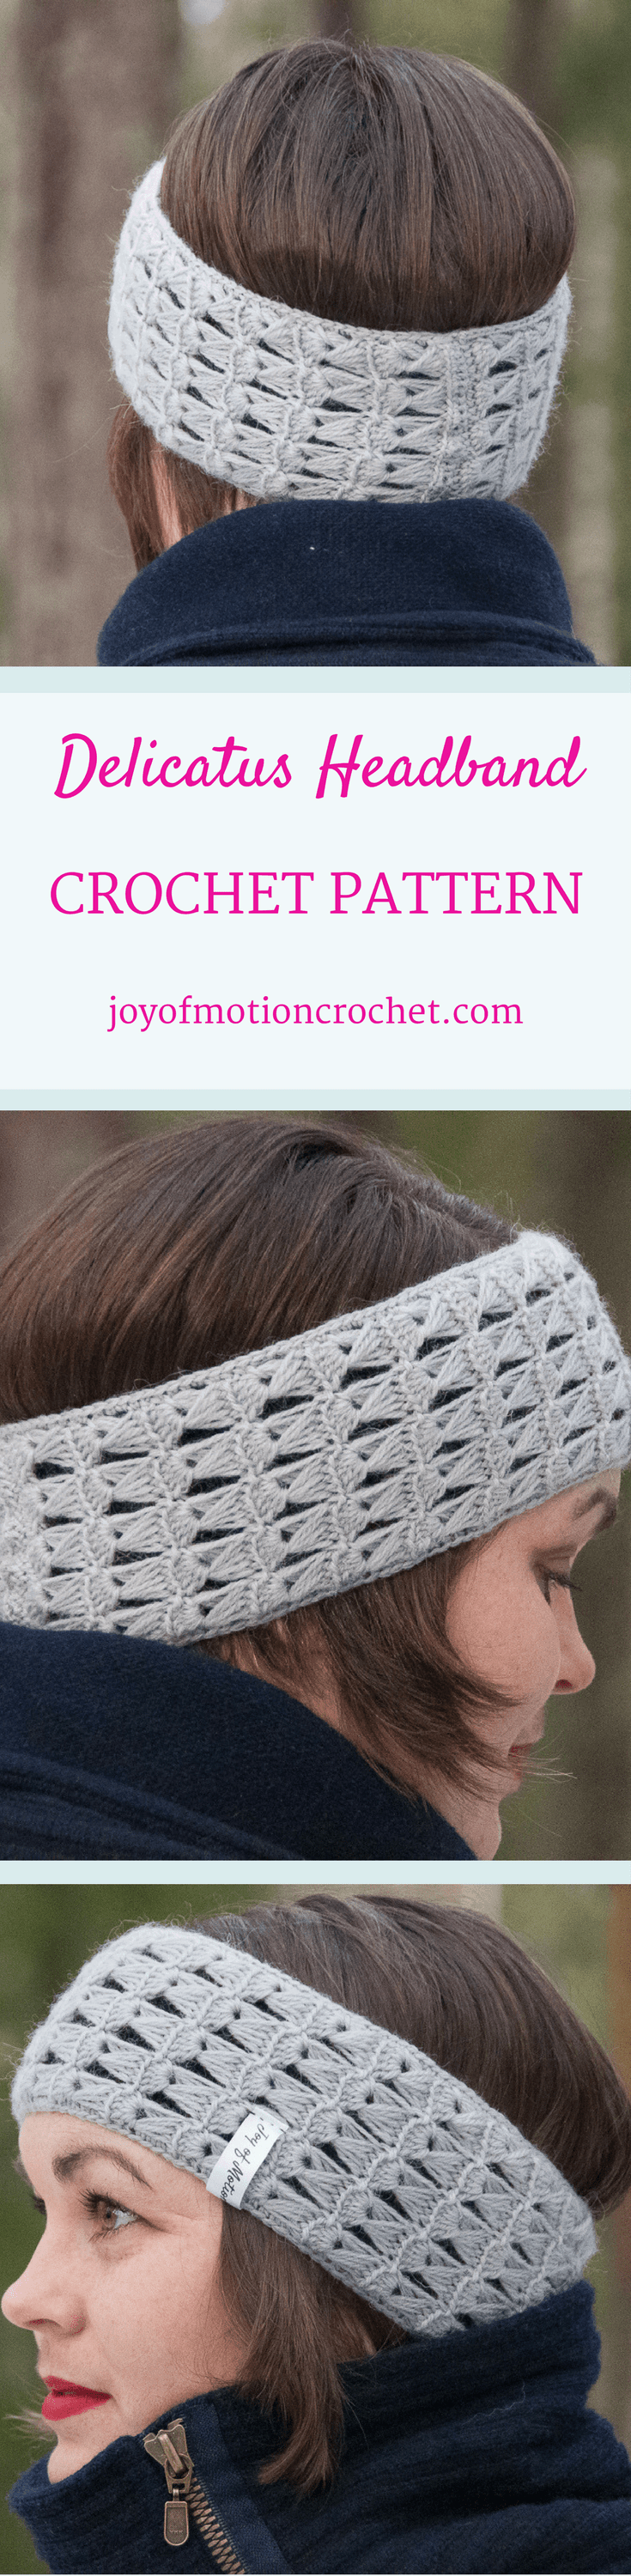 The Delicatus Headband. Broomstick lace stitch. Crochet pattern for a warm winter headband.| Headband crochet patterns.. Beanie crochet patterns. Warm crochet pattern. Headband crochet designs. Easy patterns. Winter crochet patterns. Customize crochet pattern headband. Women's crochet pattern headband. Crochet pattern headband. Headband crochet pattern unisex. Click link to learn more.